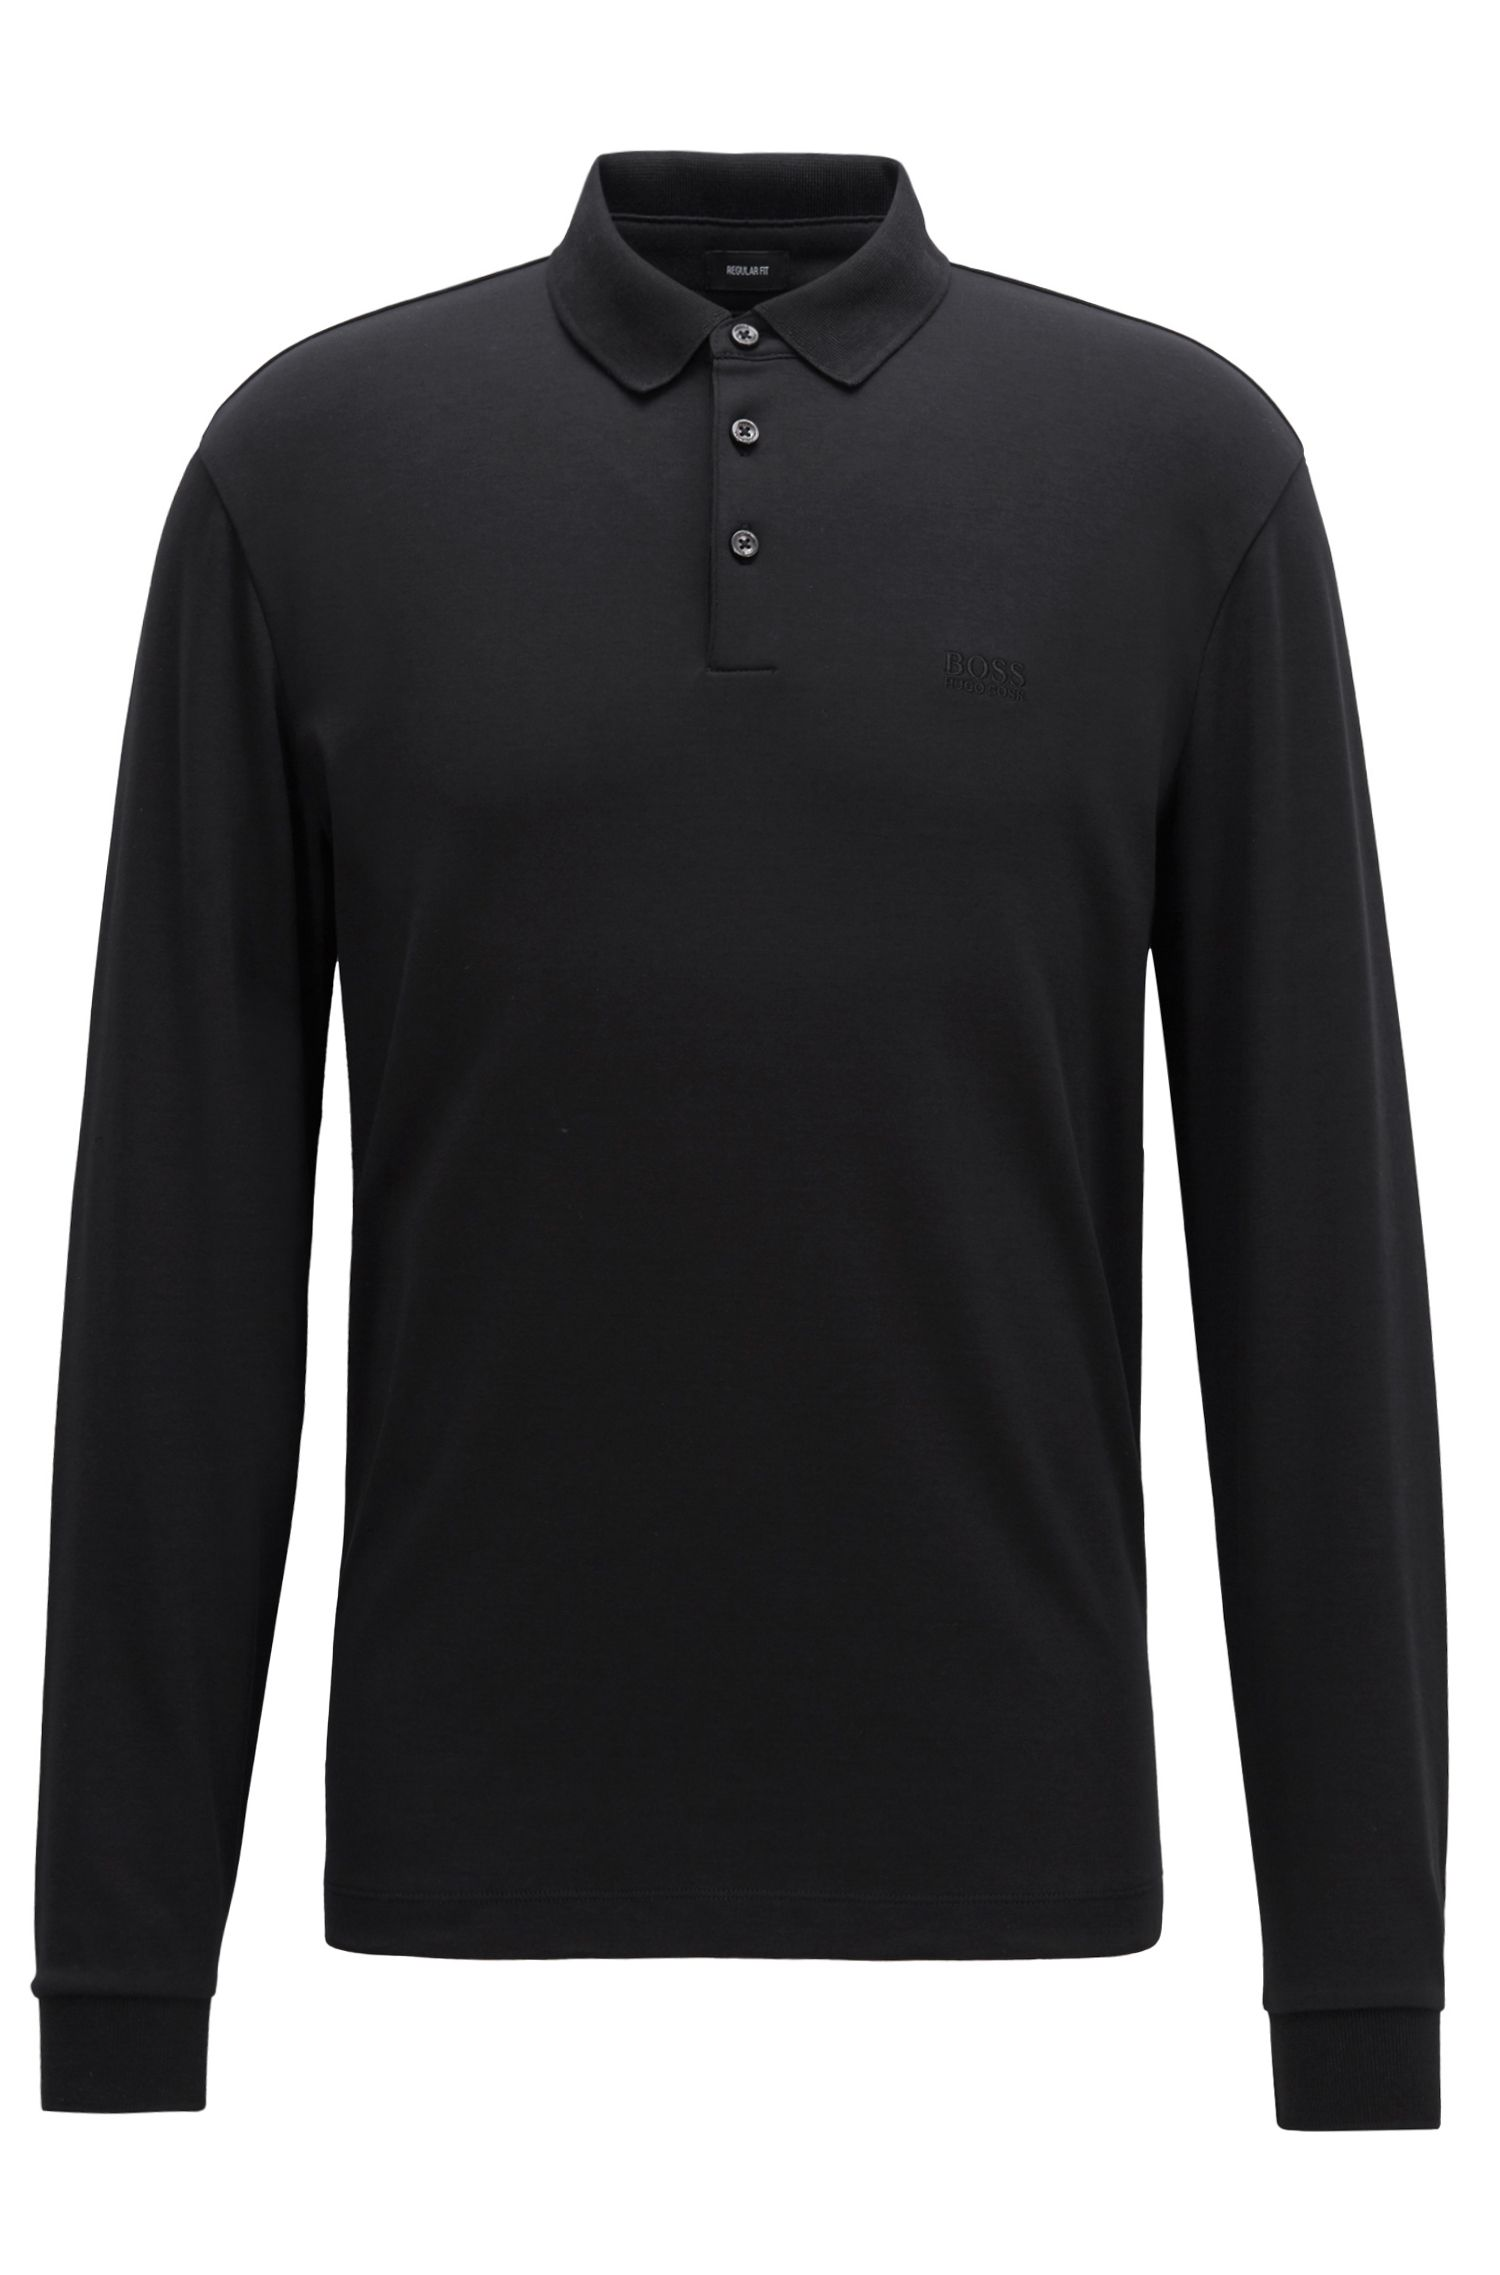 Long-sleeved polo shirt in interlock cotton, Black